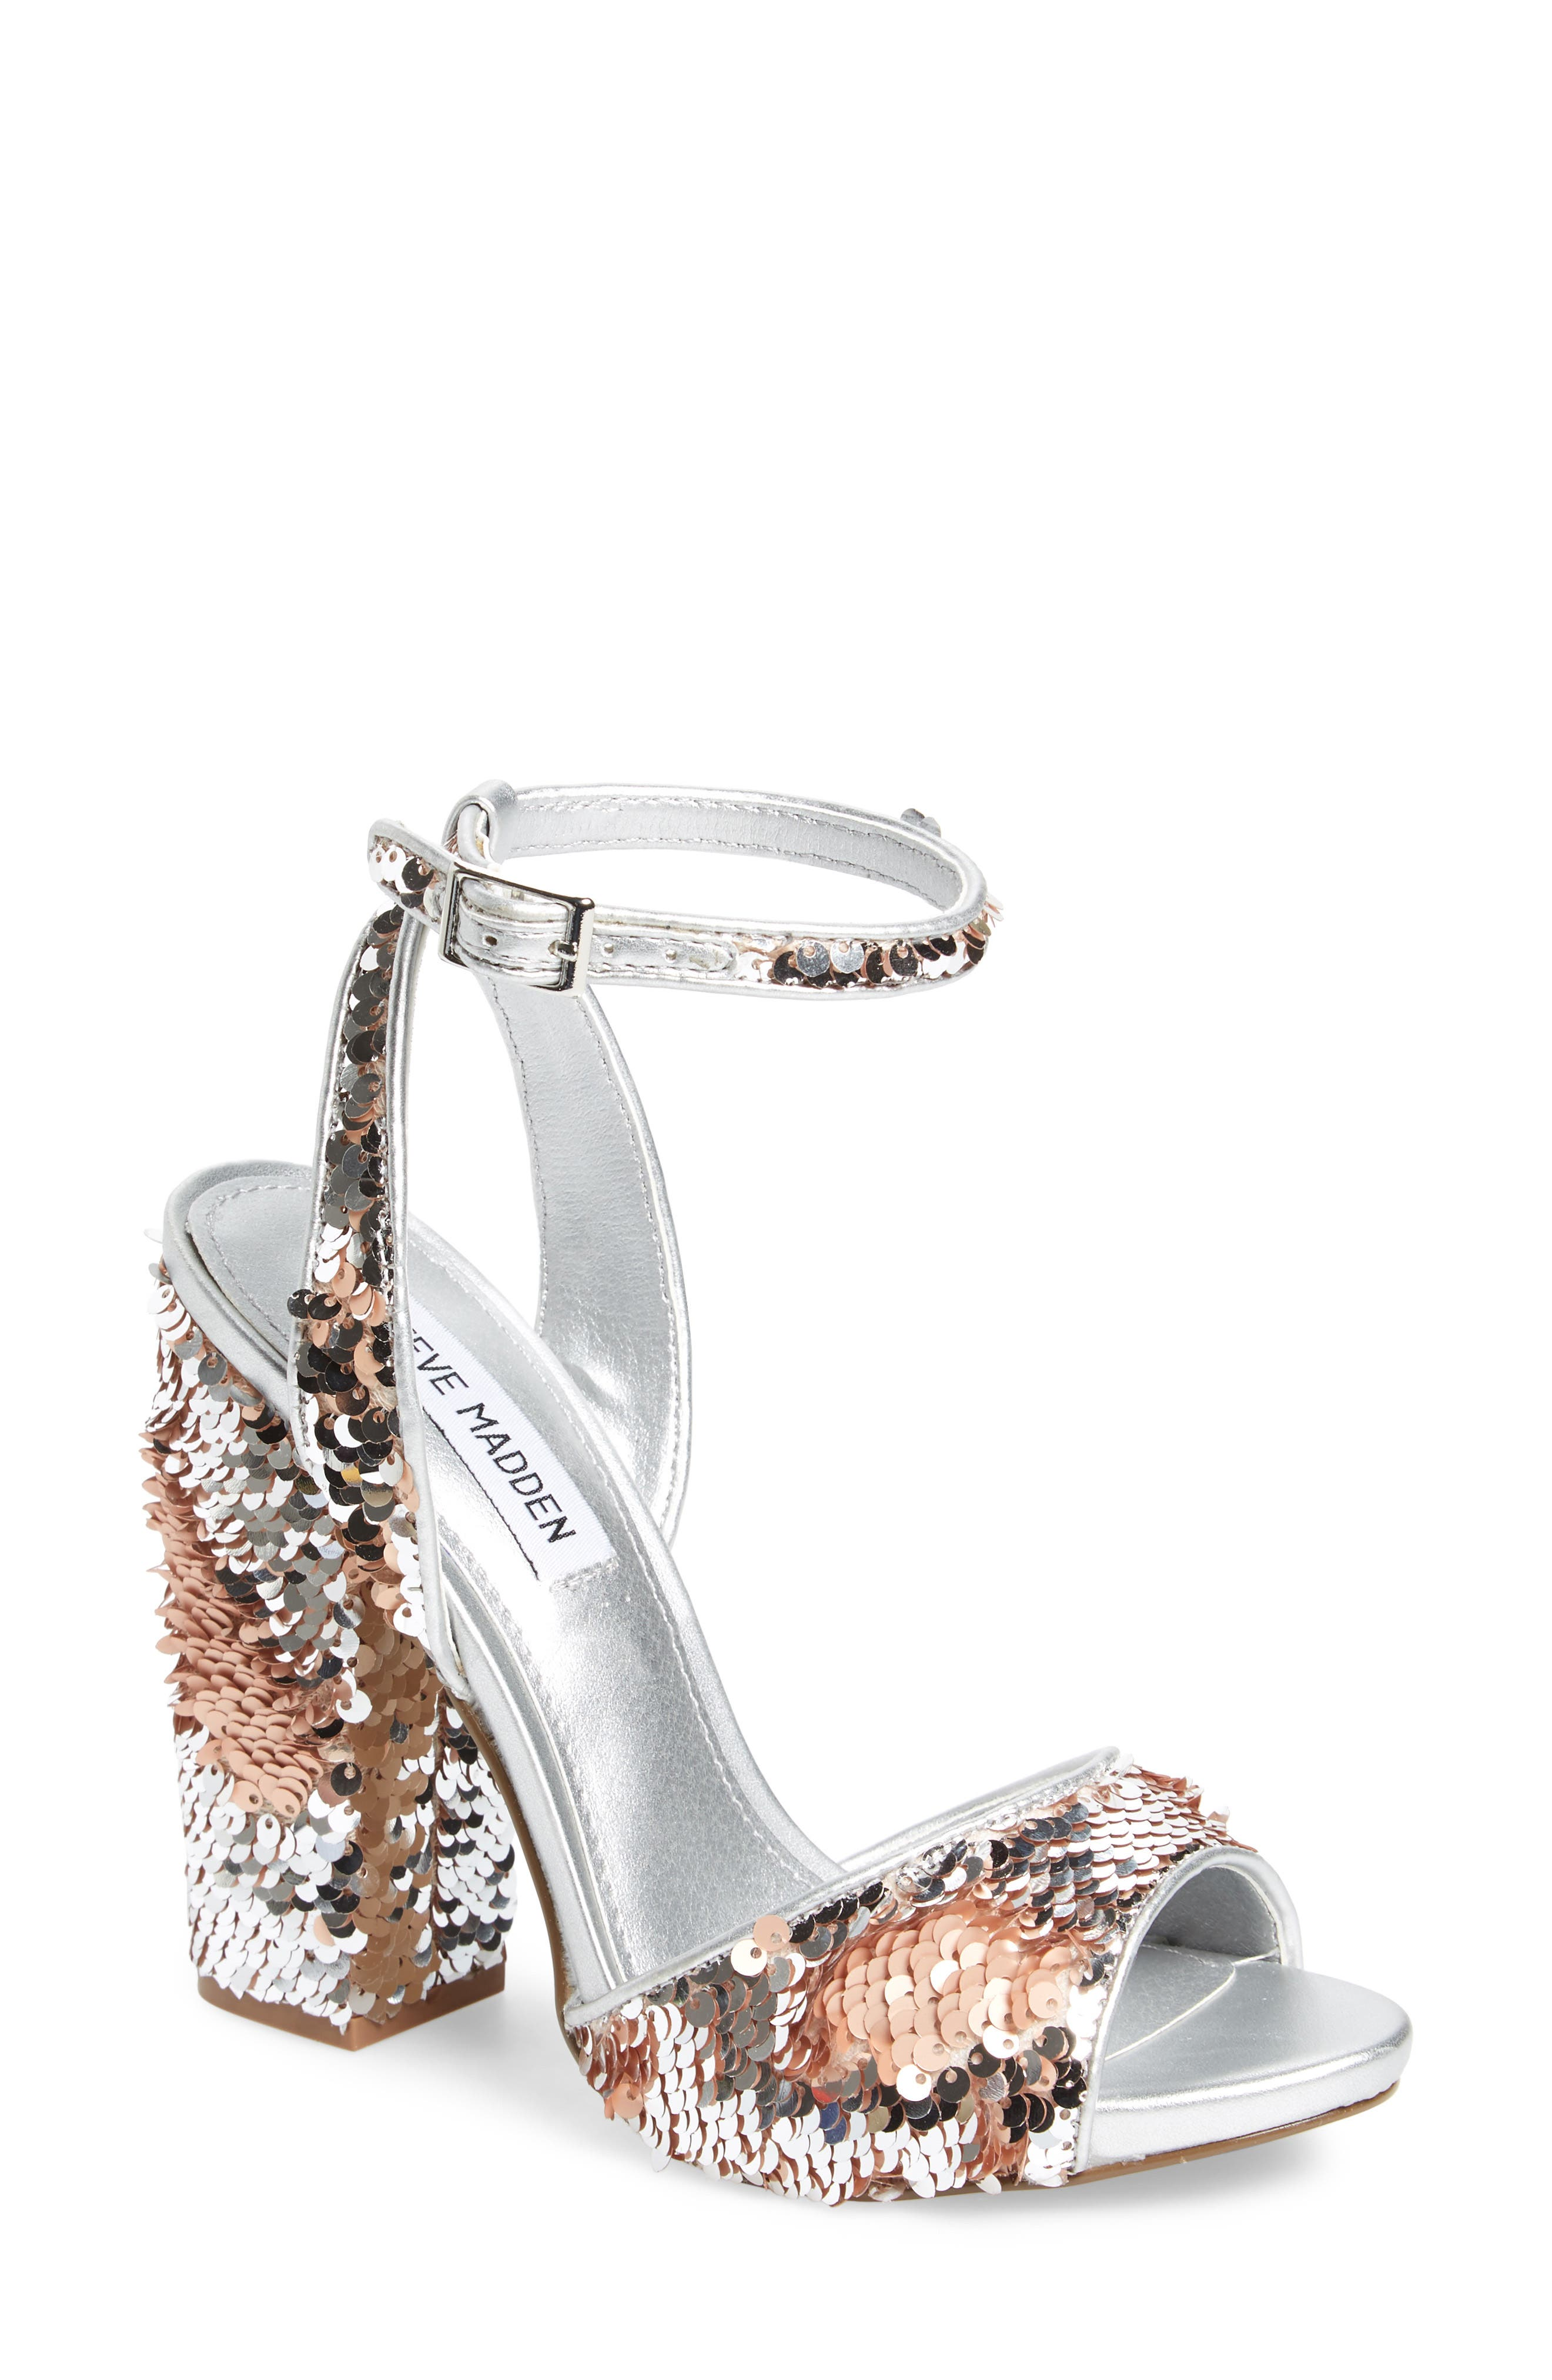 Ritzy Flip Sequin Sandal,                             Main thumbnail 1, color,                             040